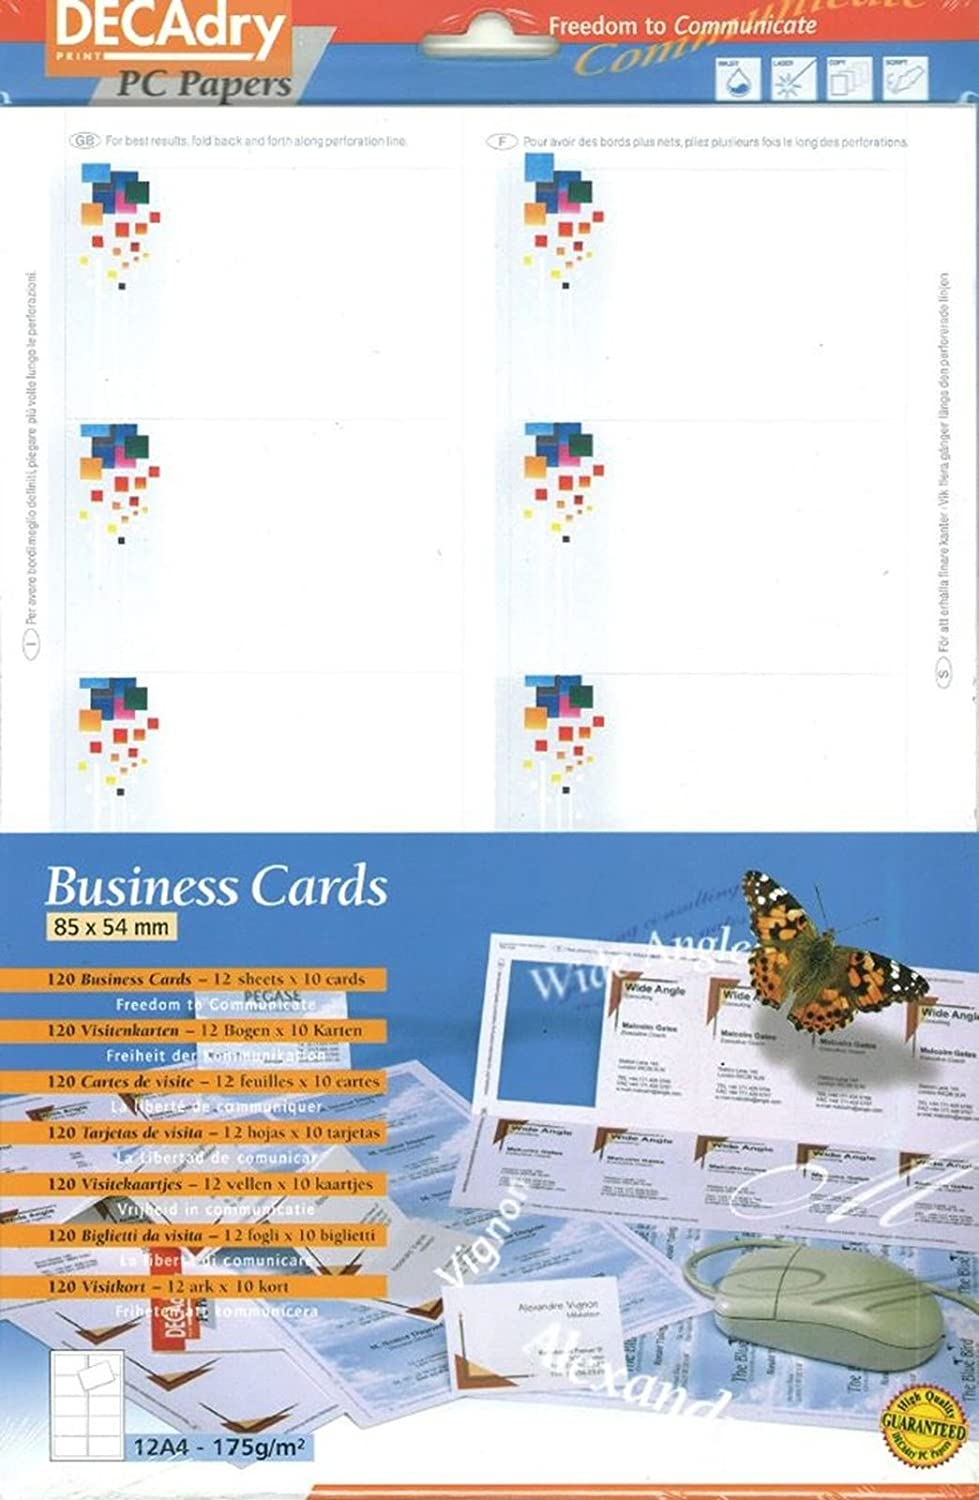 Decadry Business Cards Pixels Theme Make Your Own Business